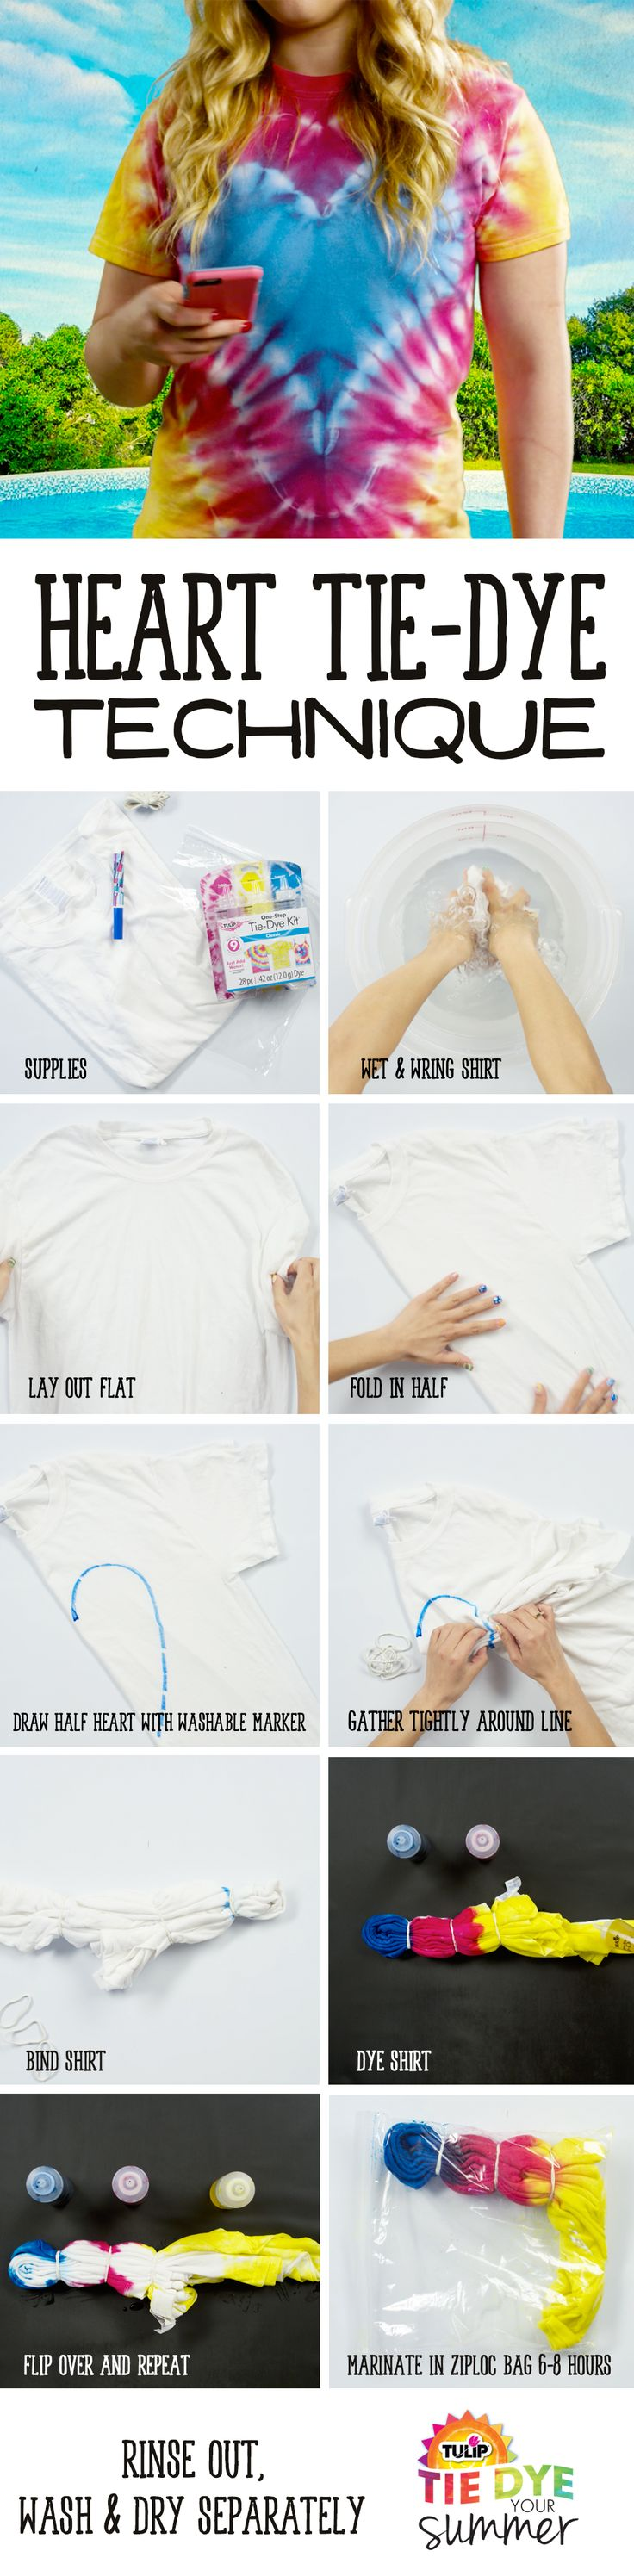 I love this technique for tie dying a heart in the middle of the shirt, can't wait to try it!